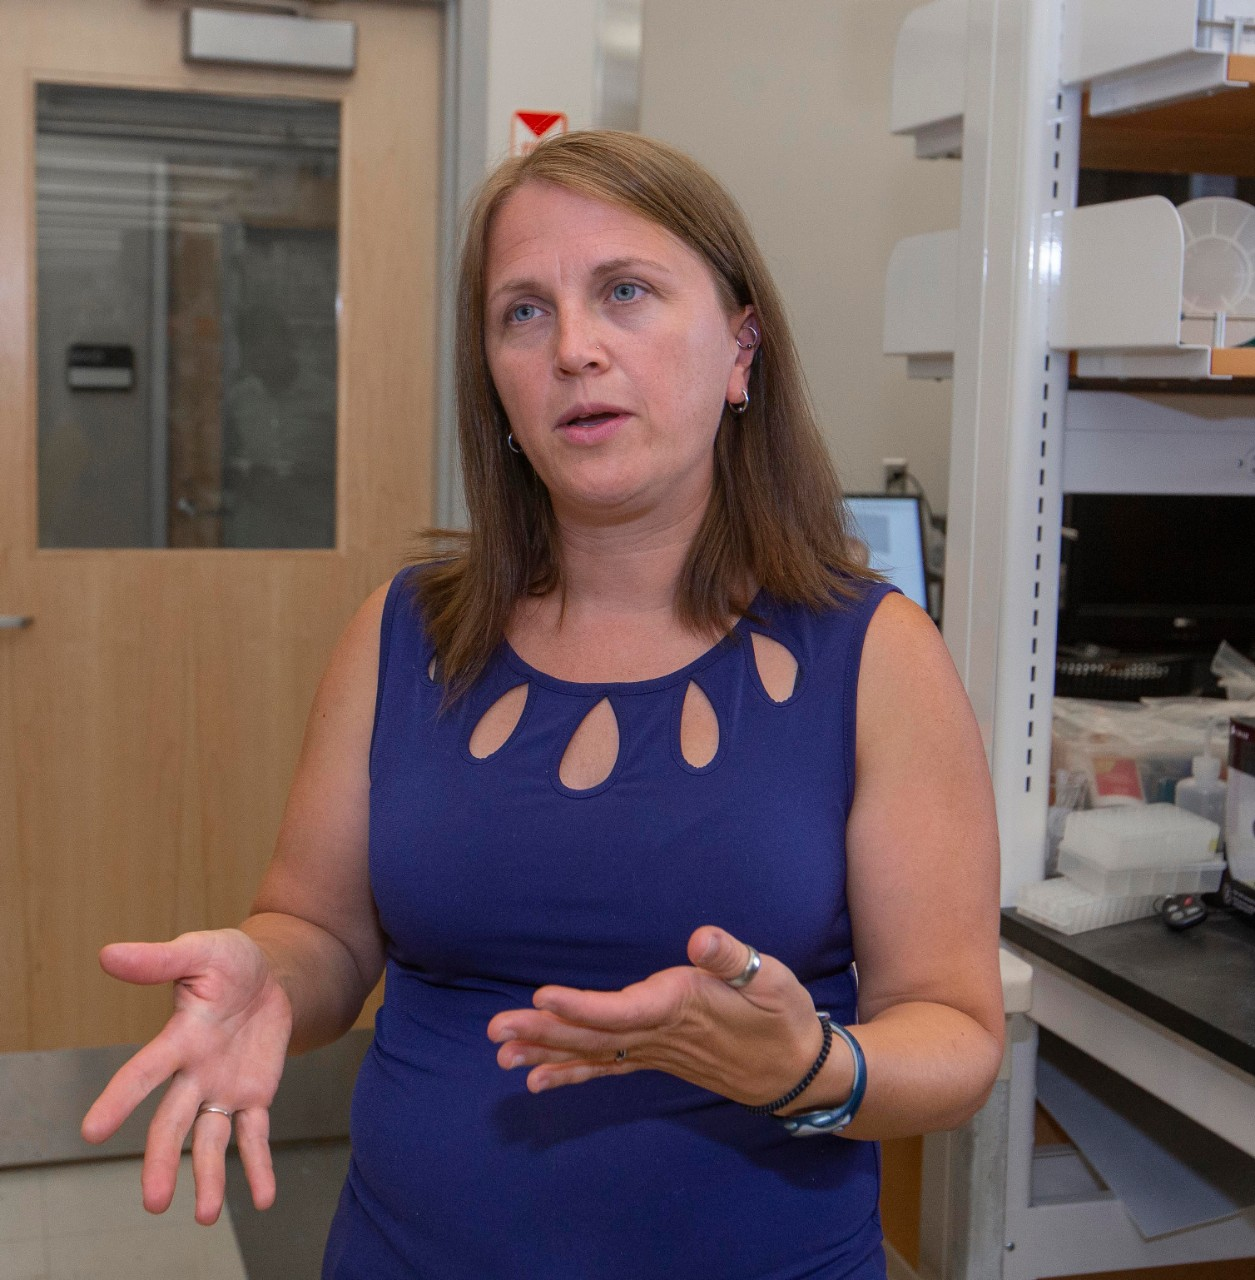 Lucinda Lawson gestures while talking in a biology lab.